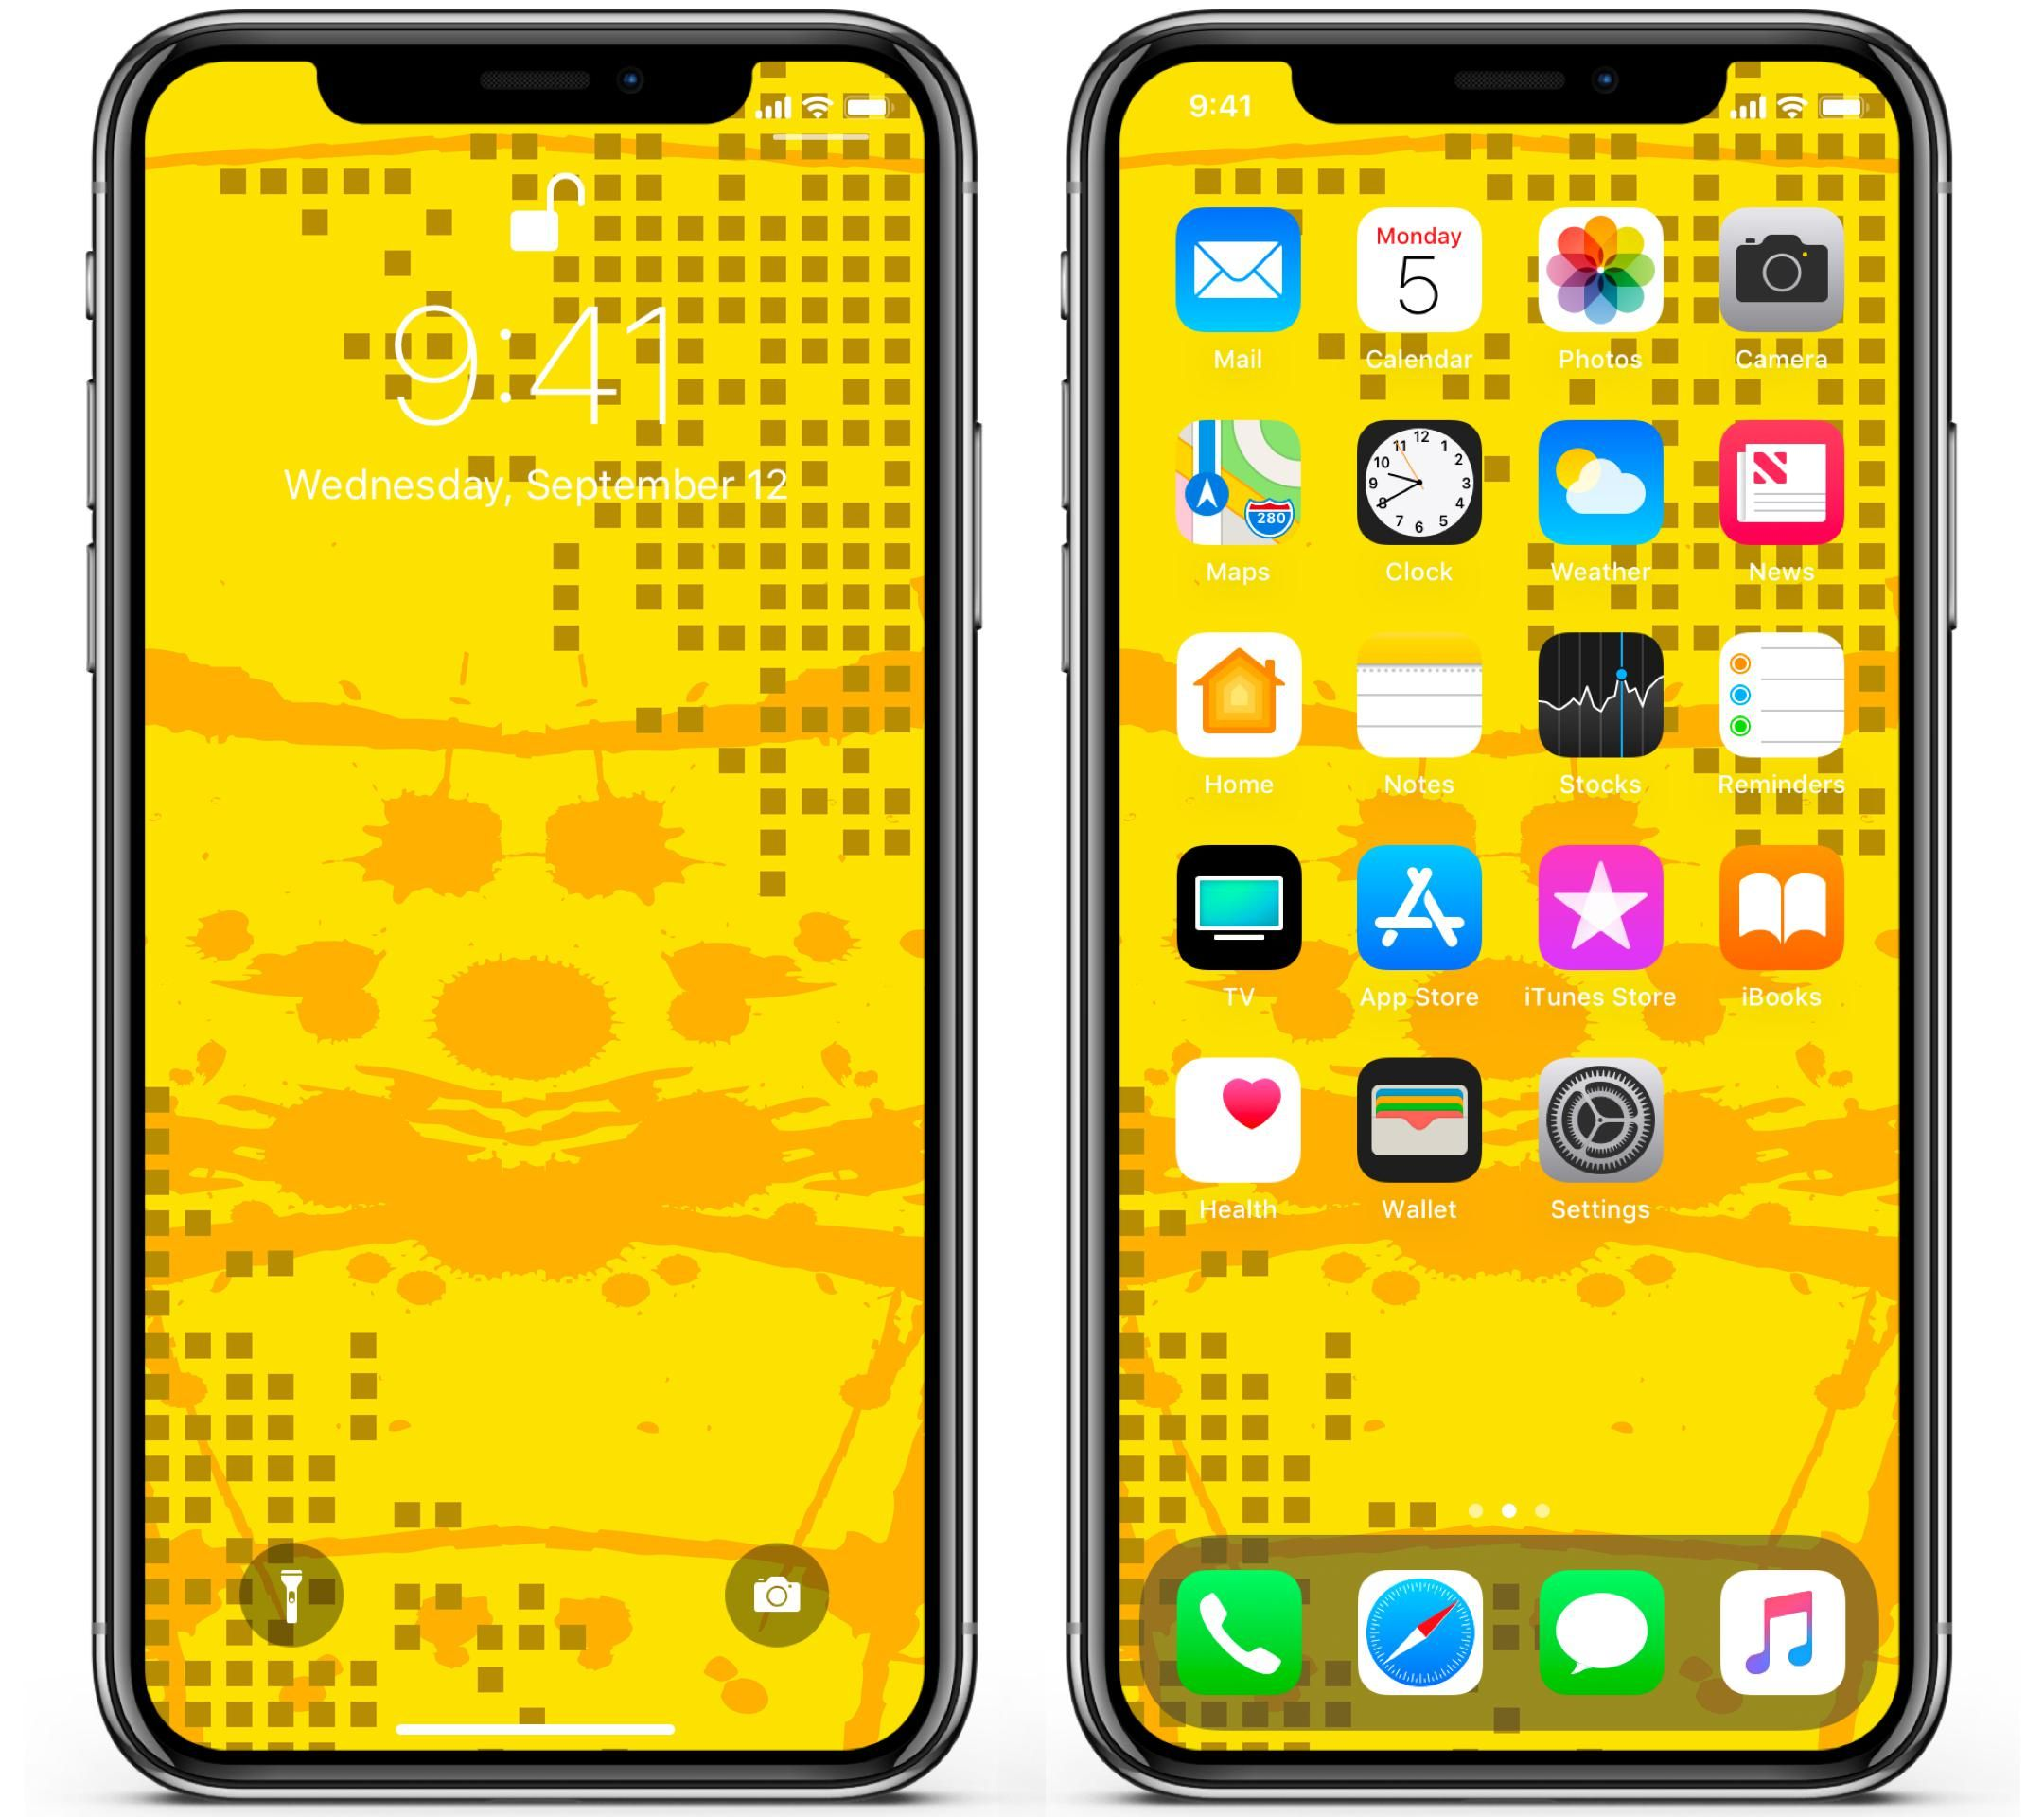 Wallpaper Day Spots Pattern Yellow Cubes Background For Hd 4k Wallpaperday For Desktop Mobile Phones Free Download In 2020 Wallpaper Mobile Phone Cube